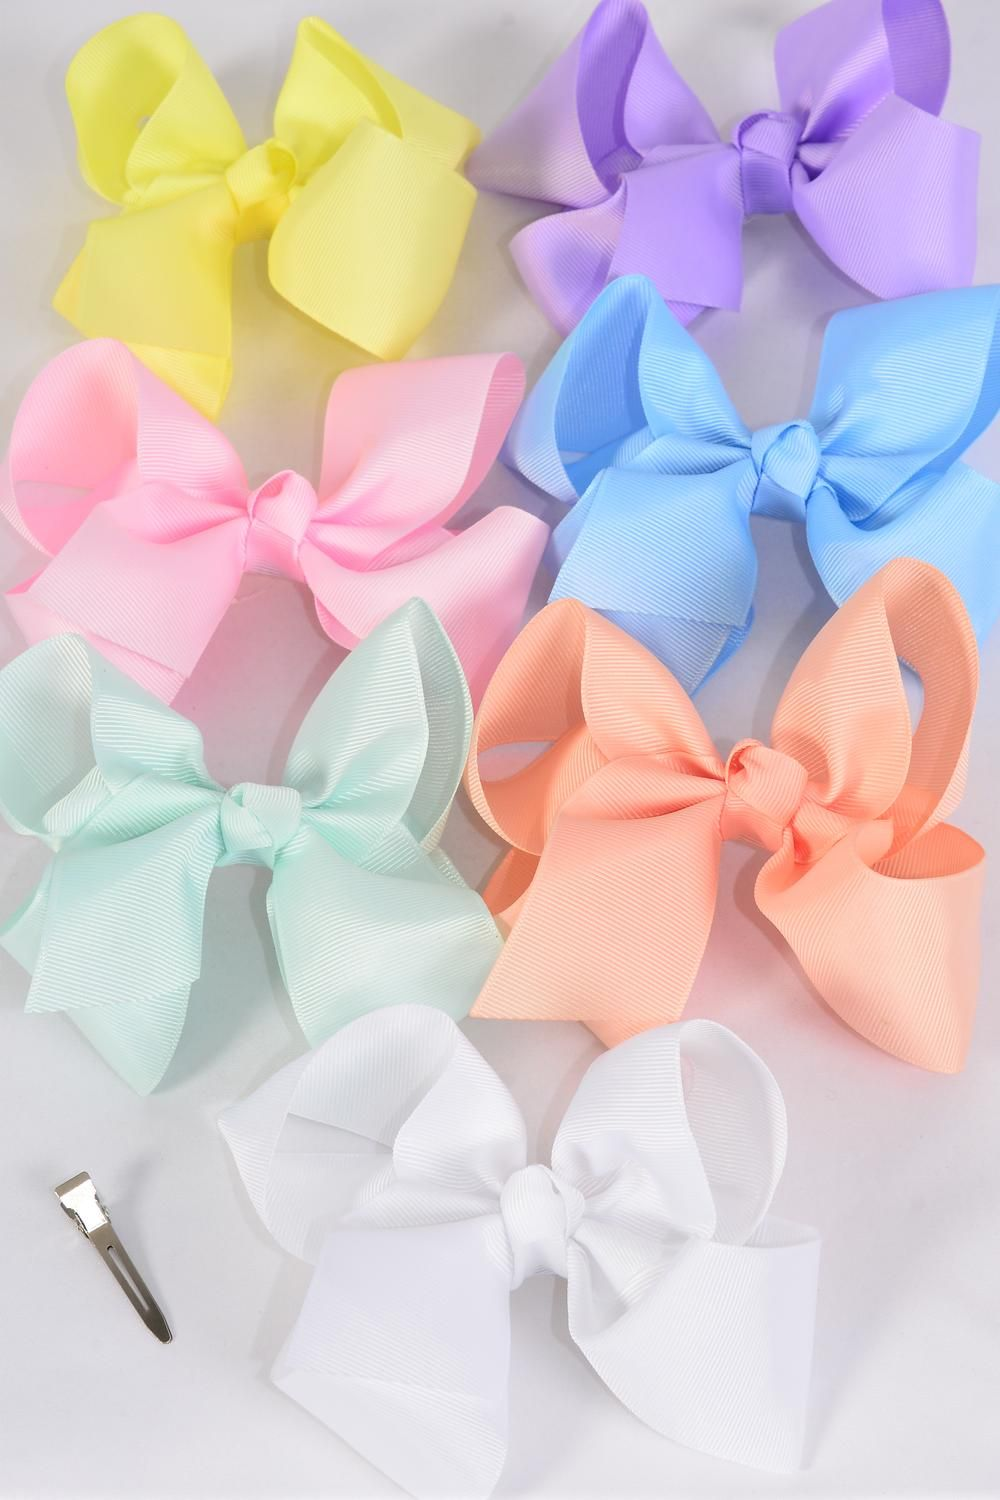 "Hair Bow Jumbo Pastel 6""x 5"" Alligator Clip Grosgrain Bow-tie/DZ **Pastel** Size-6""x 5"",Alligator Clip,2 White,2 Baby Pink,2 Lavender,2 Blue,2 Yellow,1 Peach,1 Mint Green,7 Color Asst,Clear Strip & UPC Code"